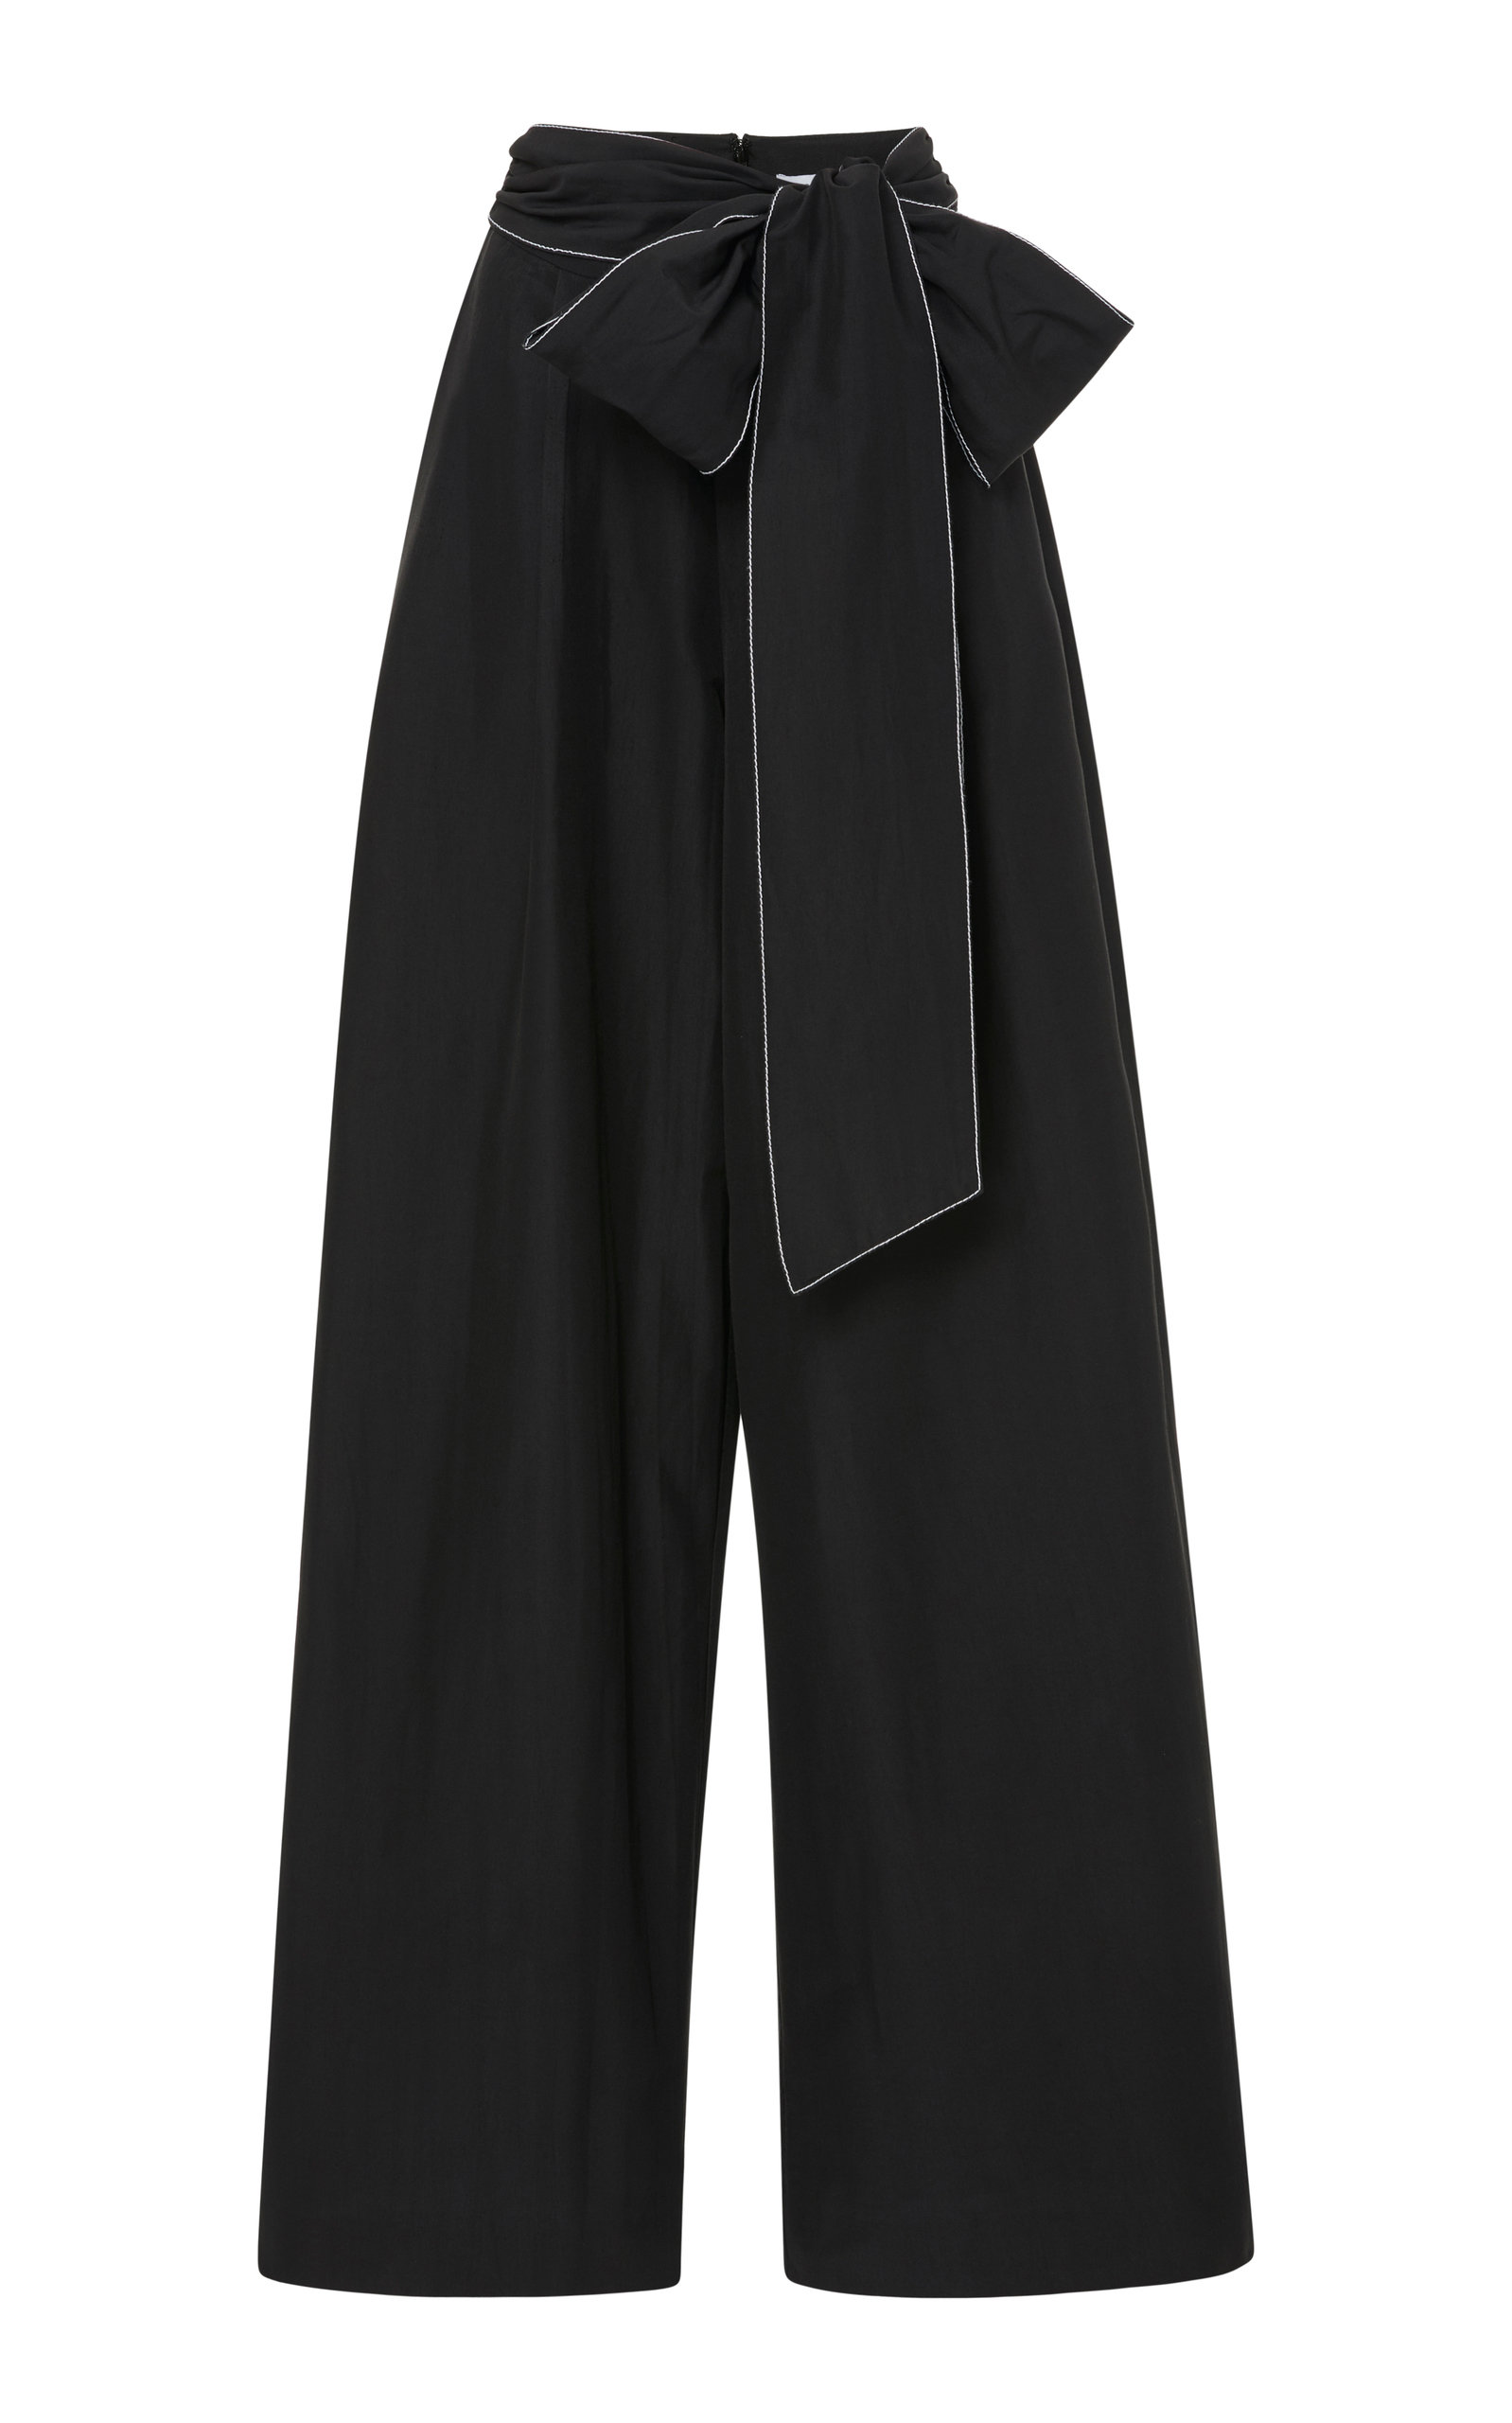 RACHEL GILBERT CHER WIDE LEG PANTS